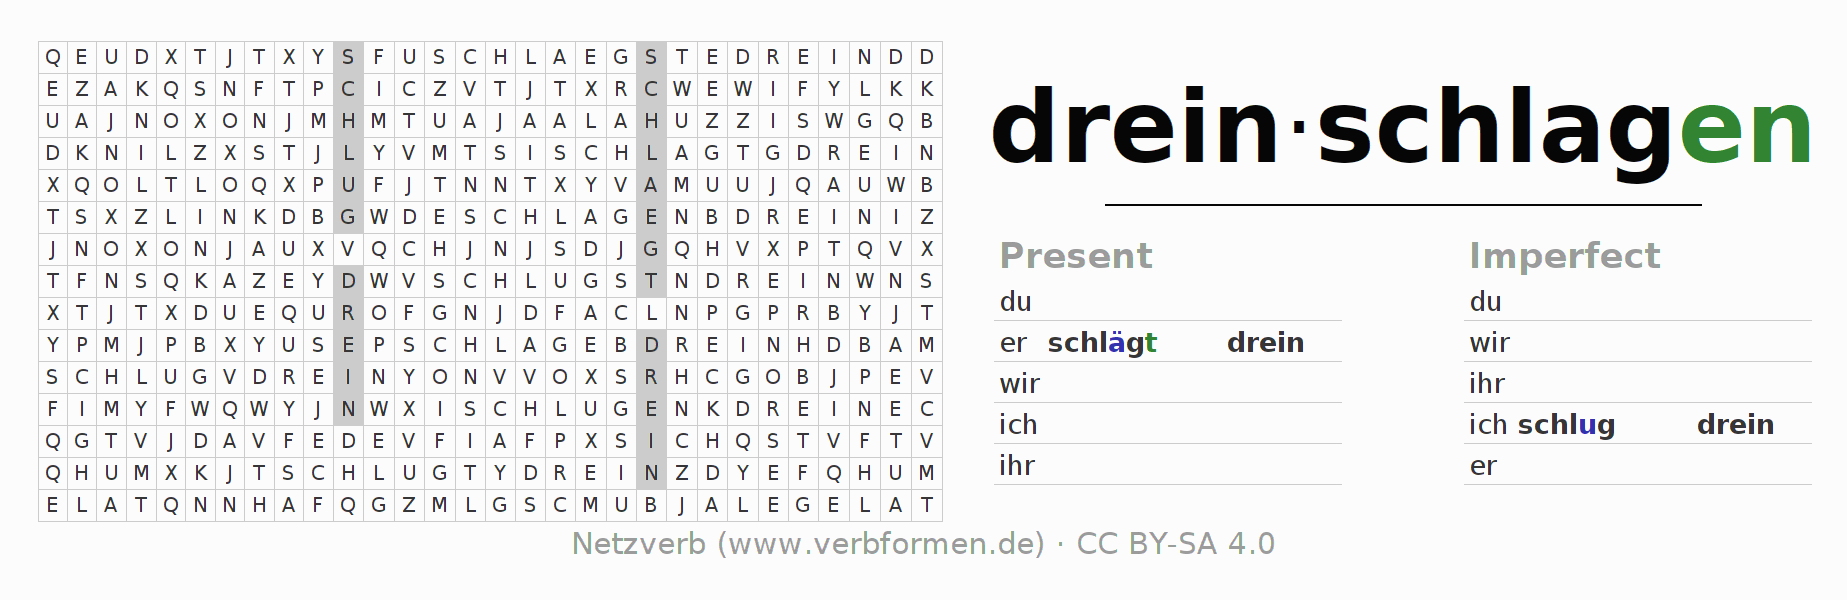 Word search puzzle for the conjugation of the verb dreinschlagen